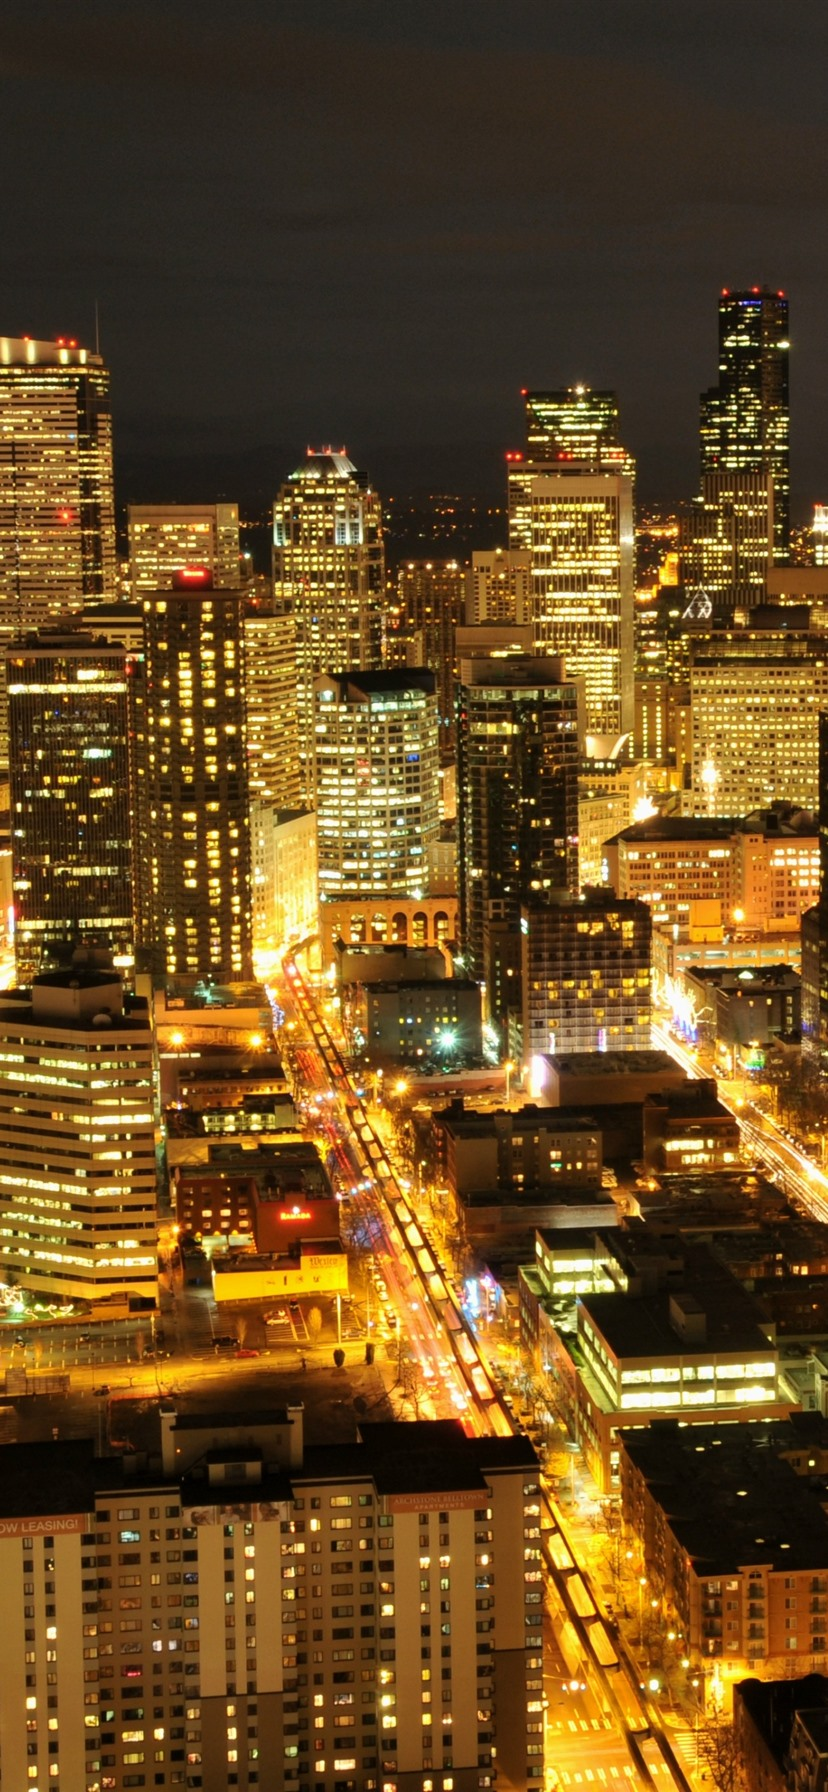 Seattle Usa City Night Skyscraper Lights 1125x2436 Iphone 11 Pro Xs X Wallpaper Background Picture Image